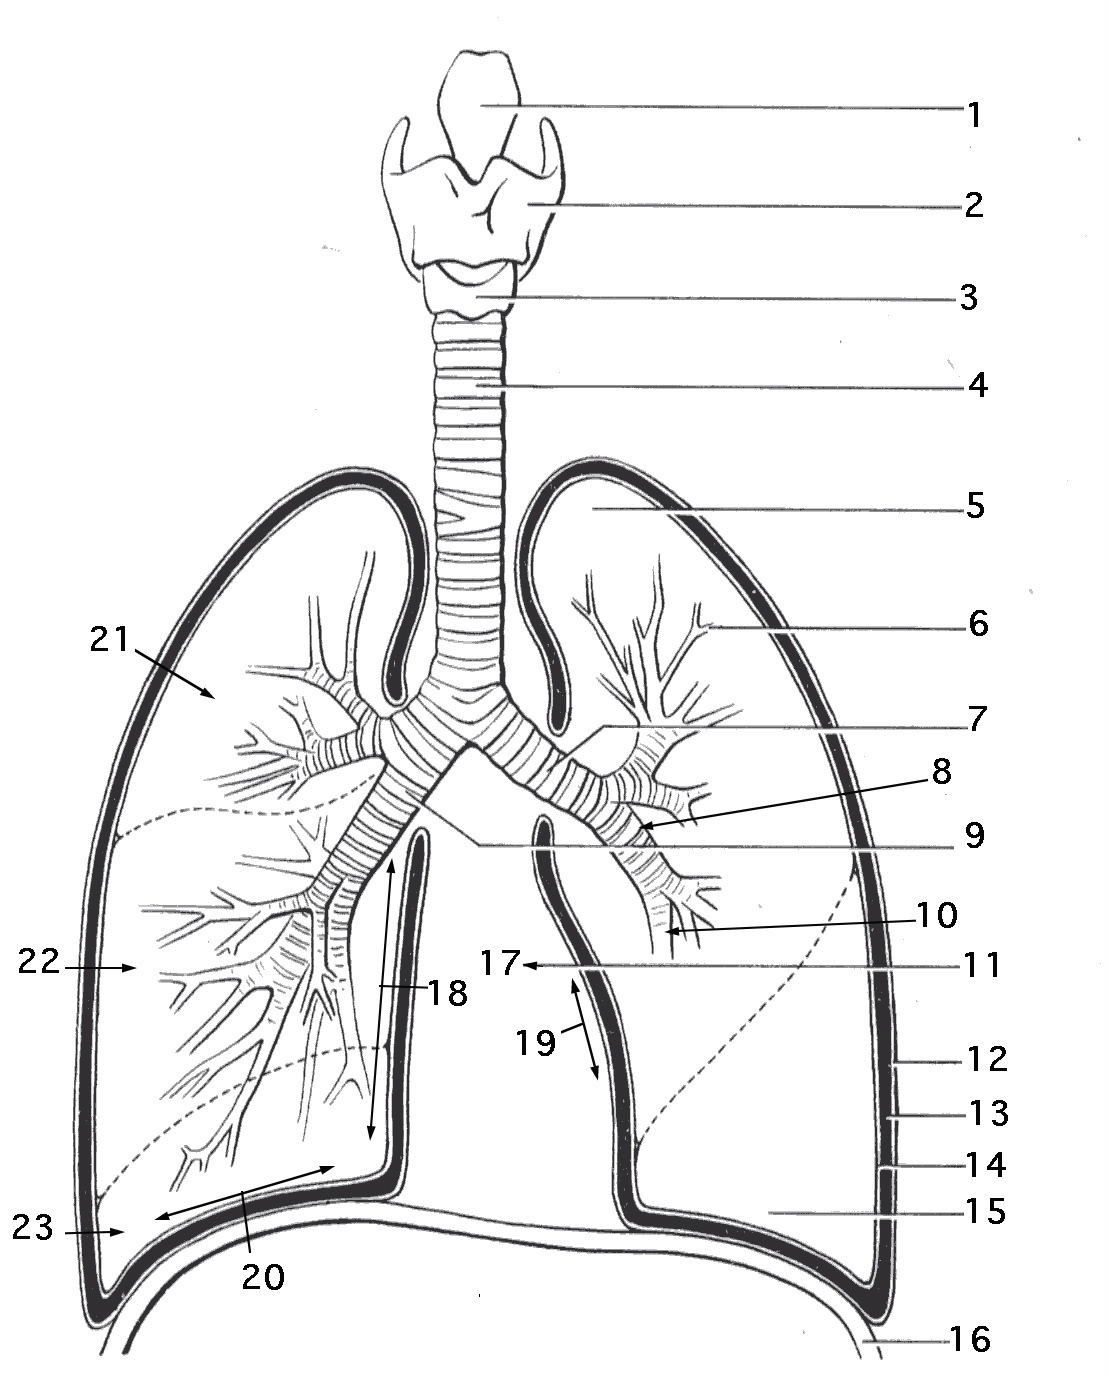 Label The Respiratory System Answers Awesome 806 Respiration Lab Anatomy Coloring Book Lung Anatomy Coloring Pages